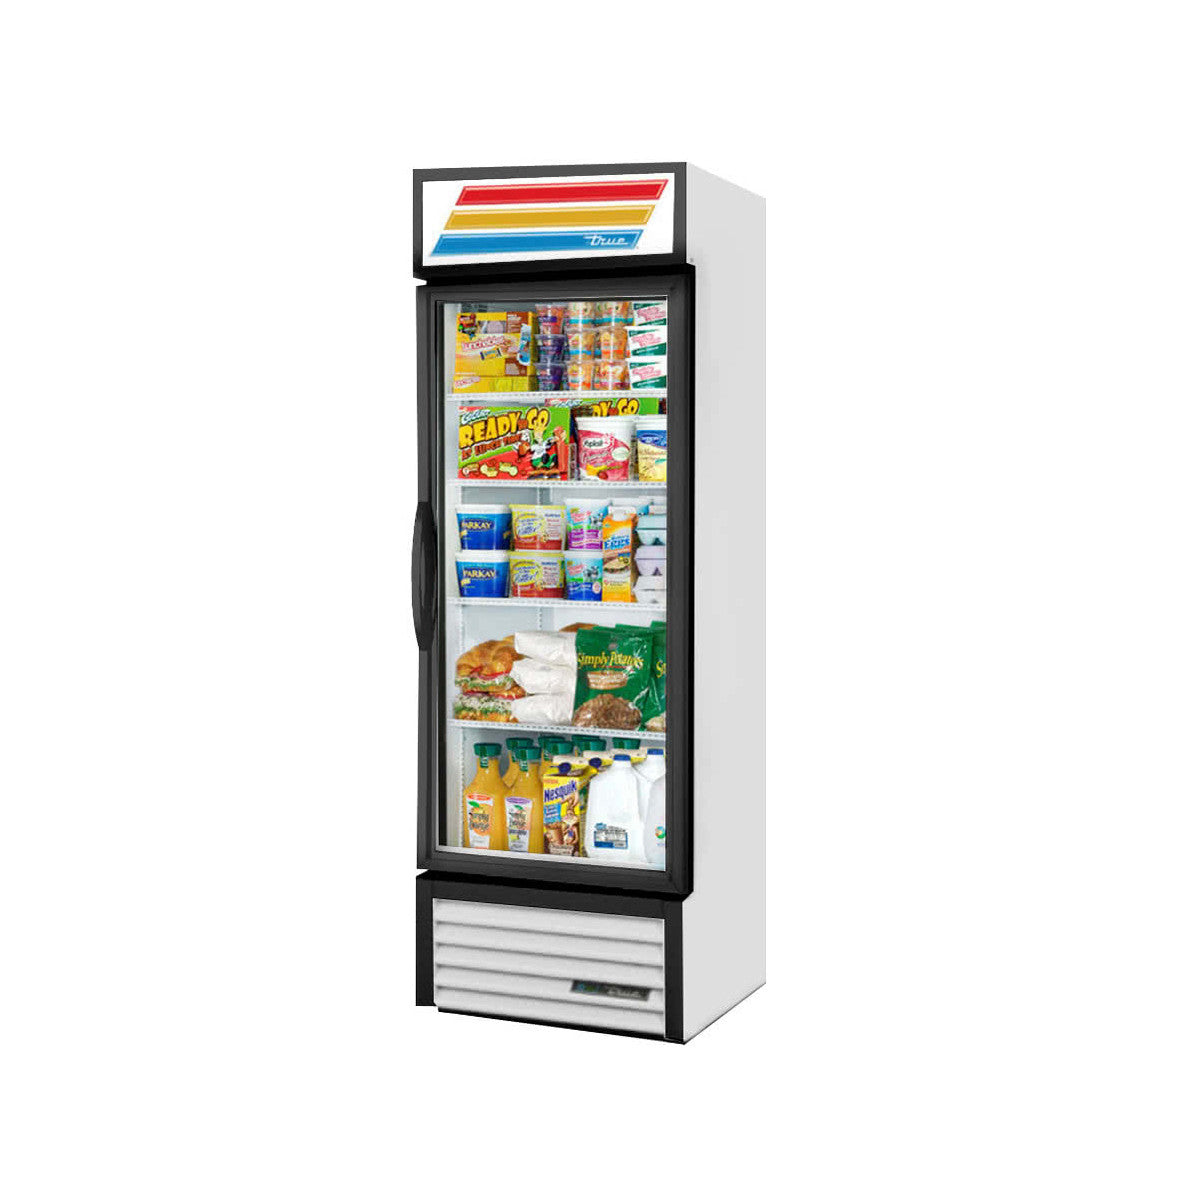 True Gdm 19t Hctsl01 27 White Glass Door Refrigerated Merchandiser